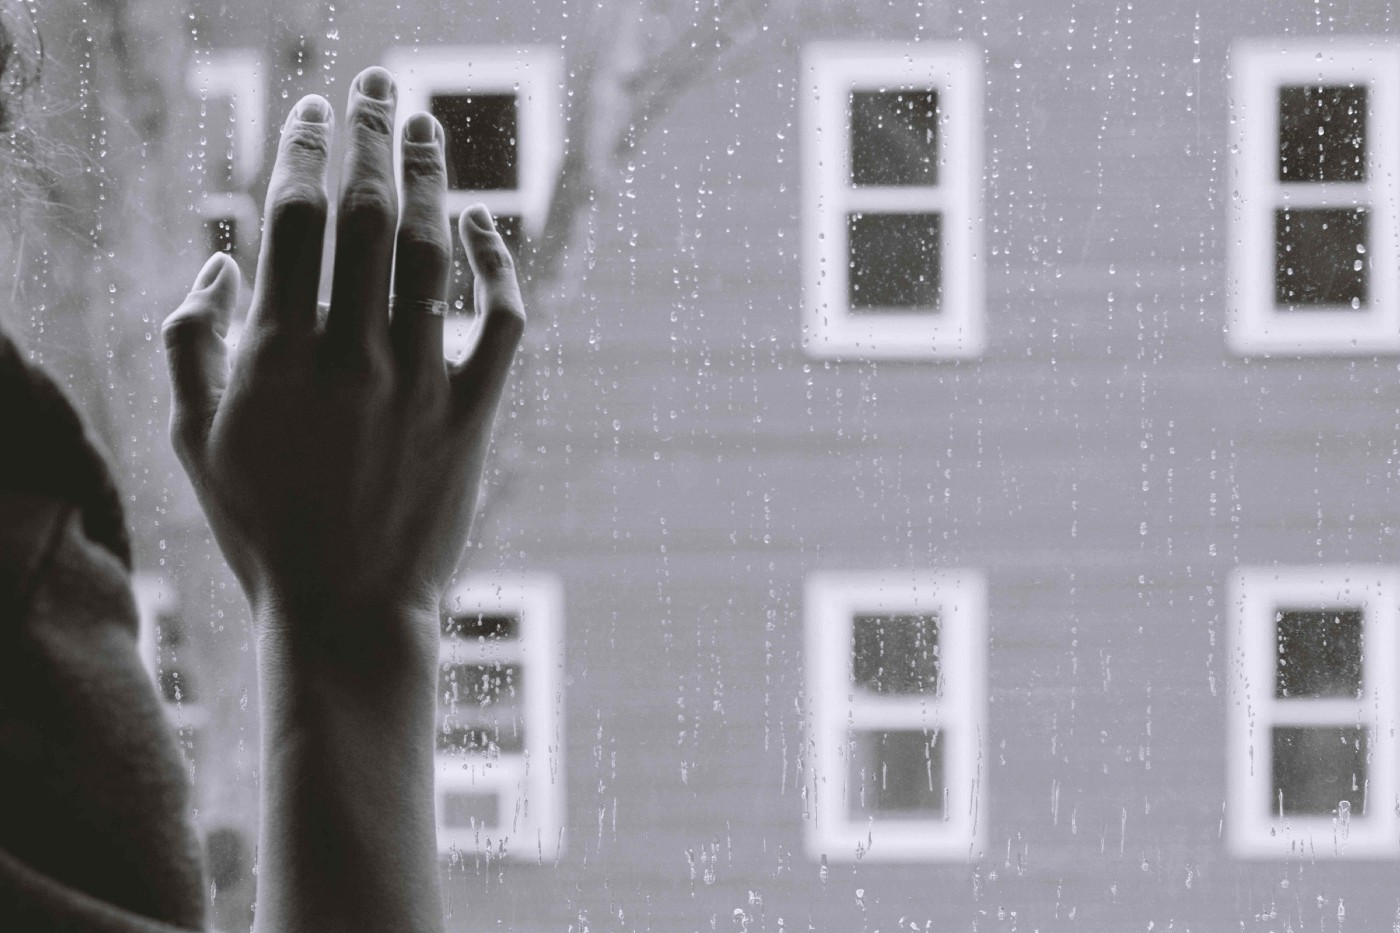 Hand on window, looking out over a rainy day, grayscale